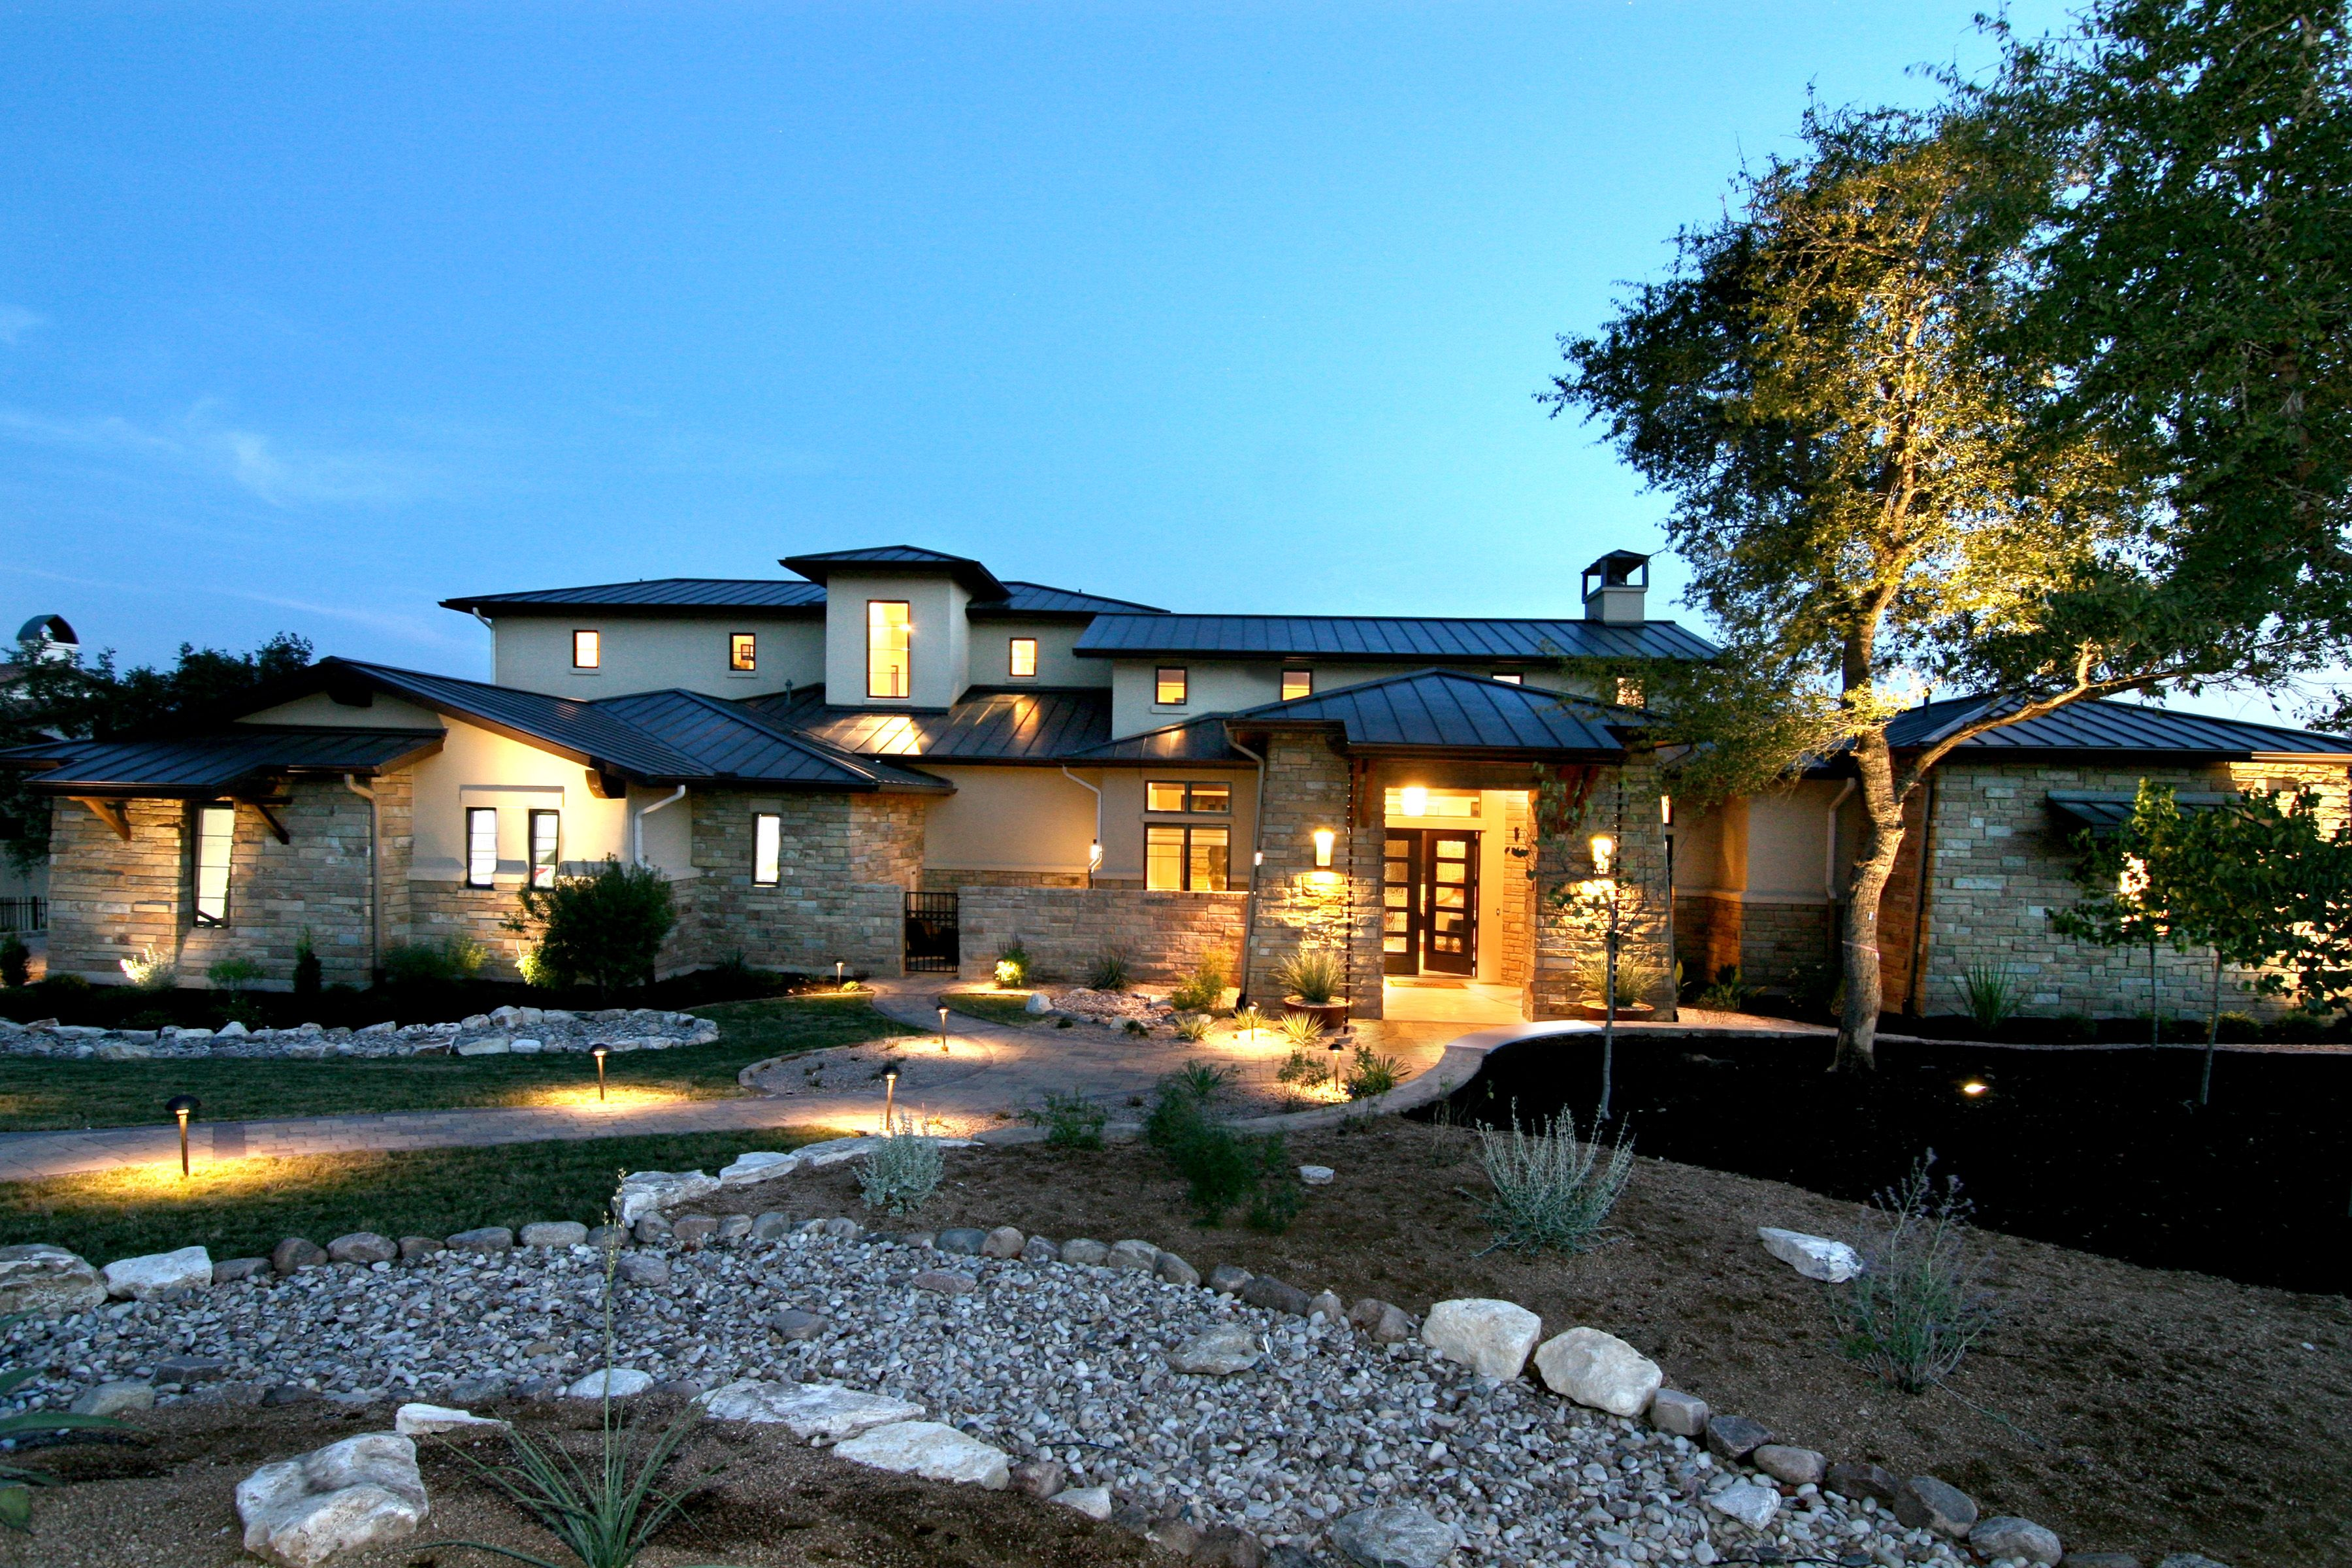 Excellent 17 Best Images About Modern Home On Pinterest House Plans Largest Home Design Picture Inspirations Pitcheantrous